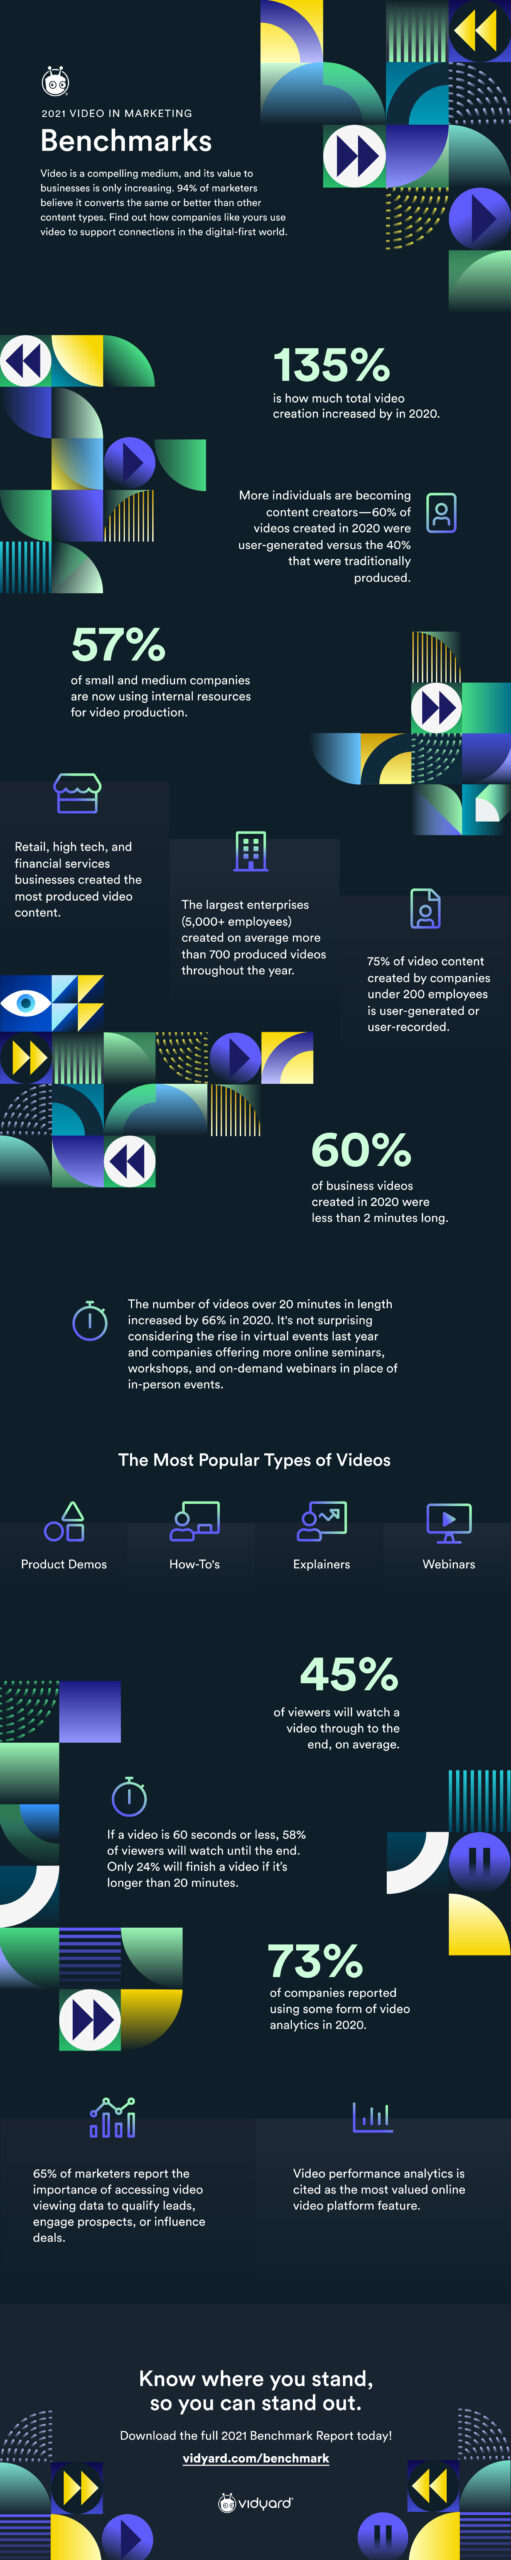 Infographic for the 2021 Video Marketing Benchmark Report.